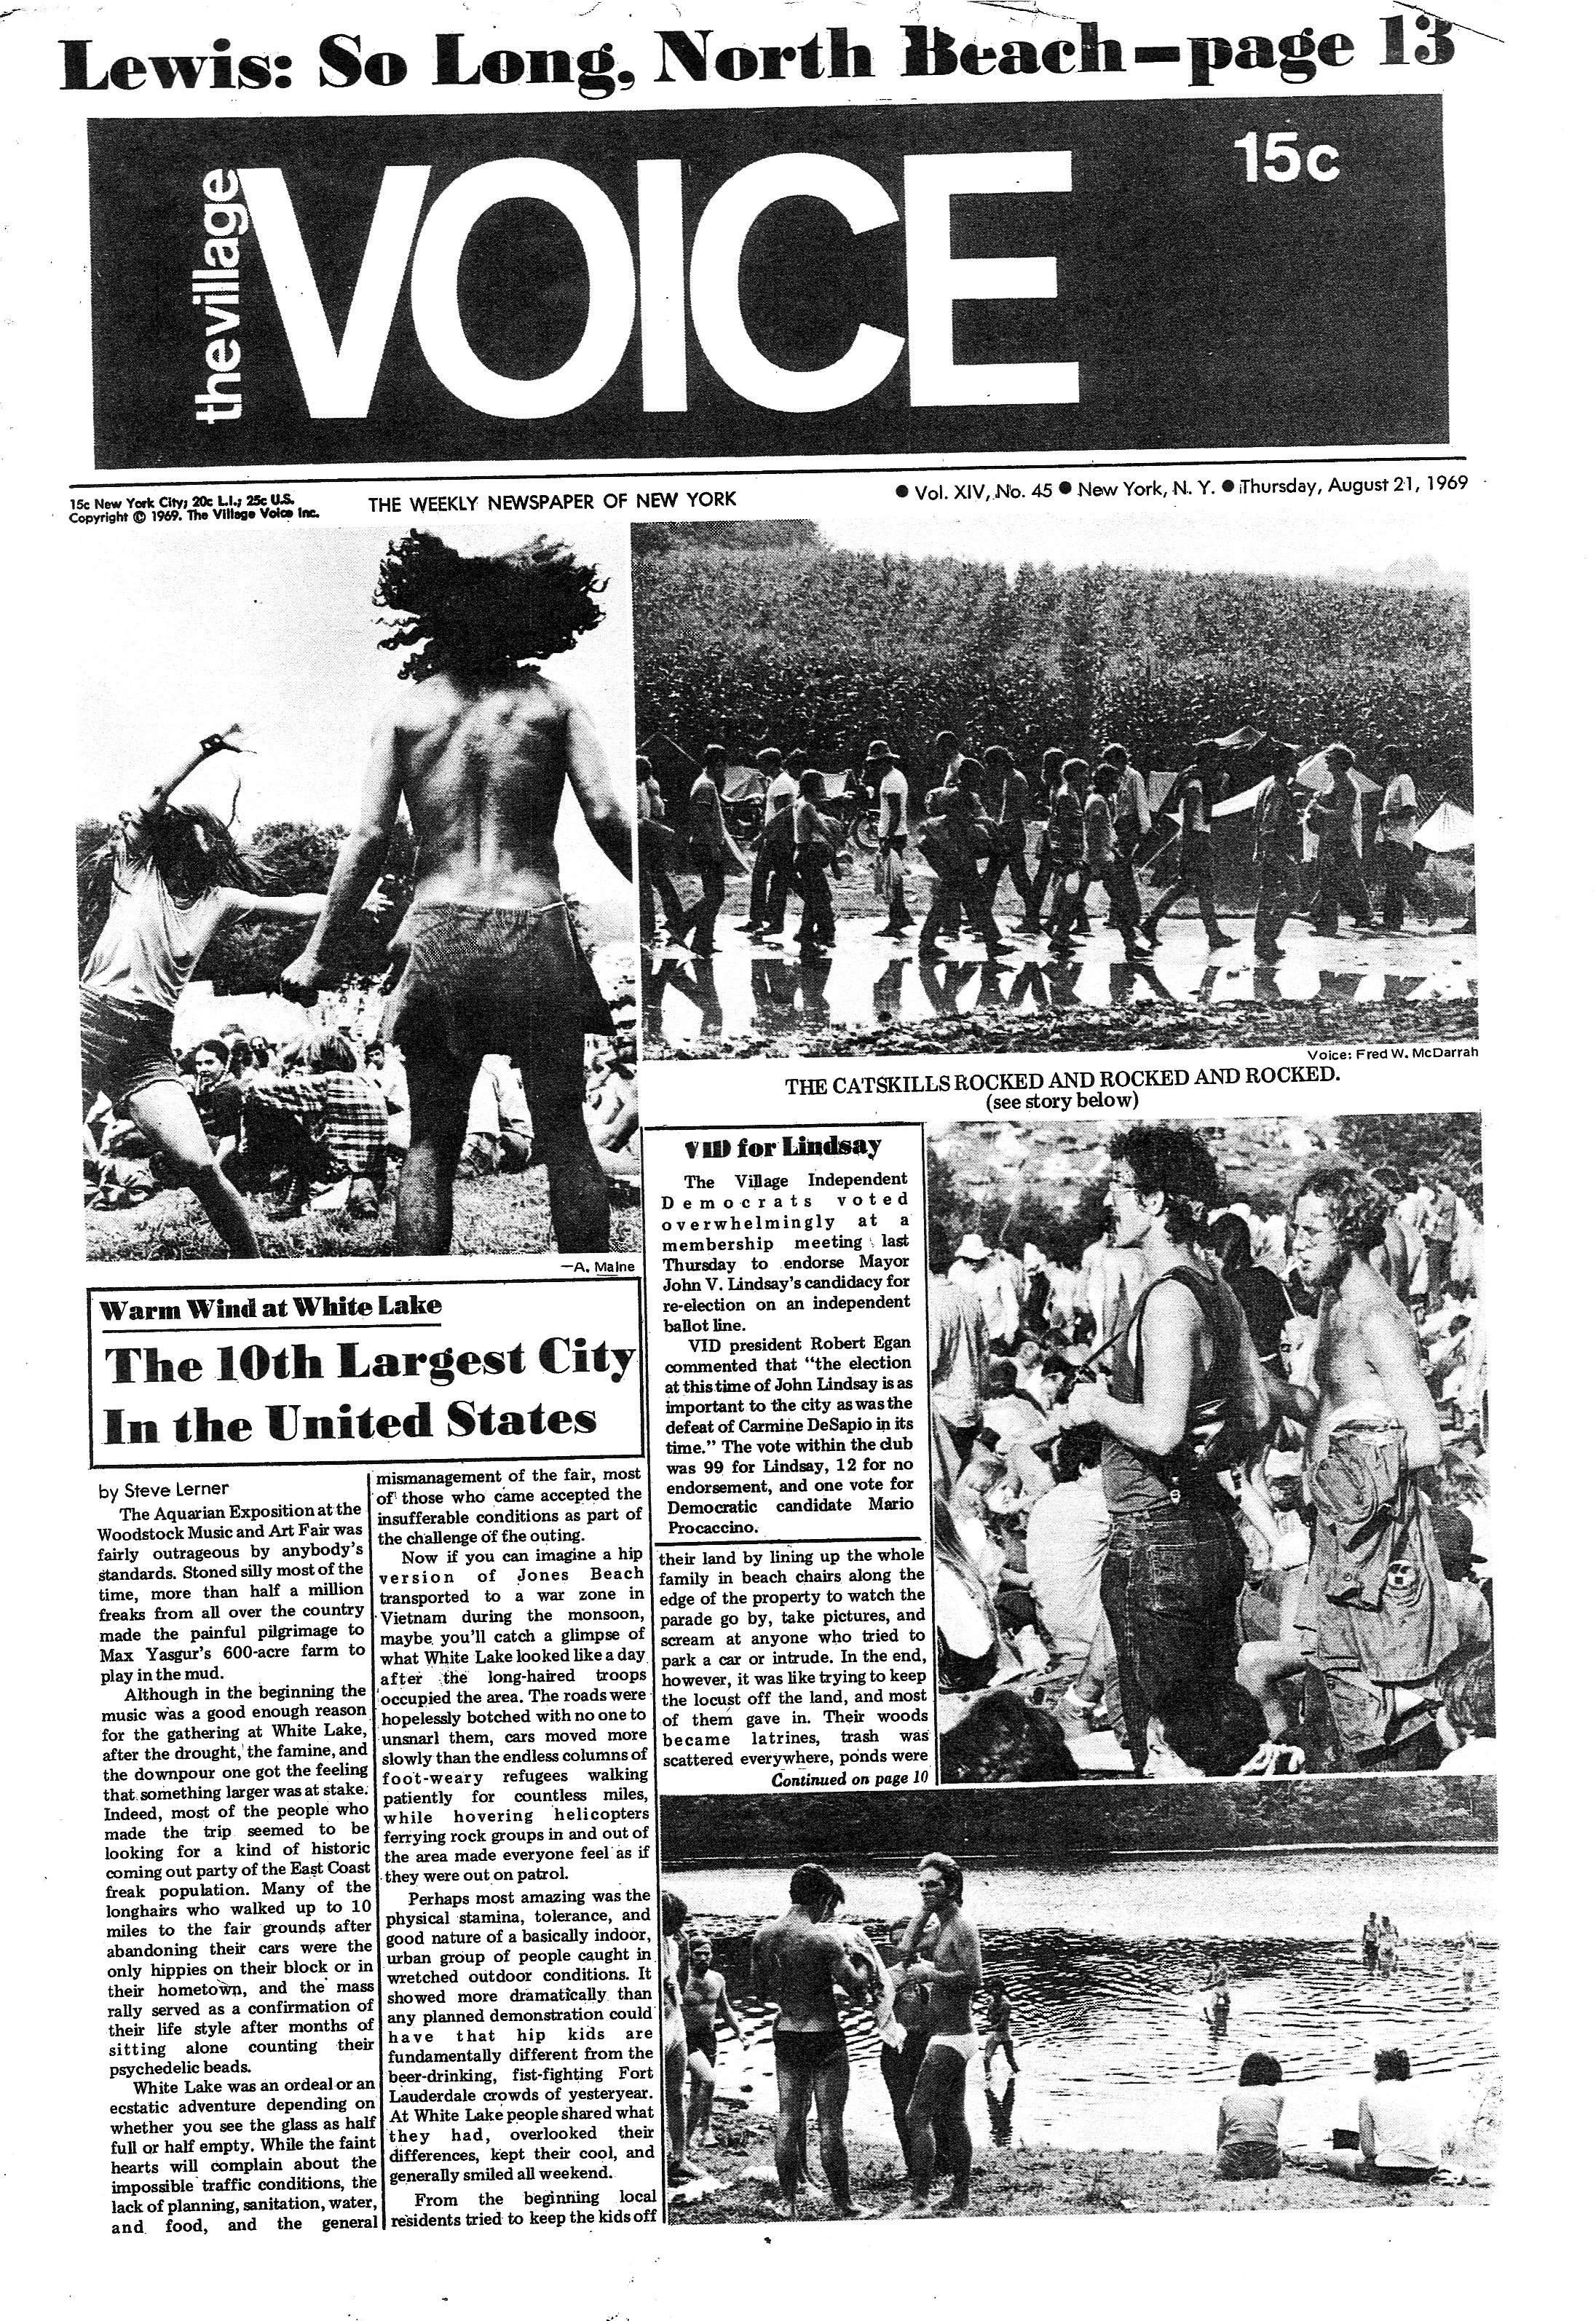 The Village VOICE - August 21 1969